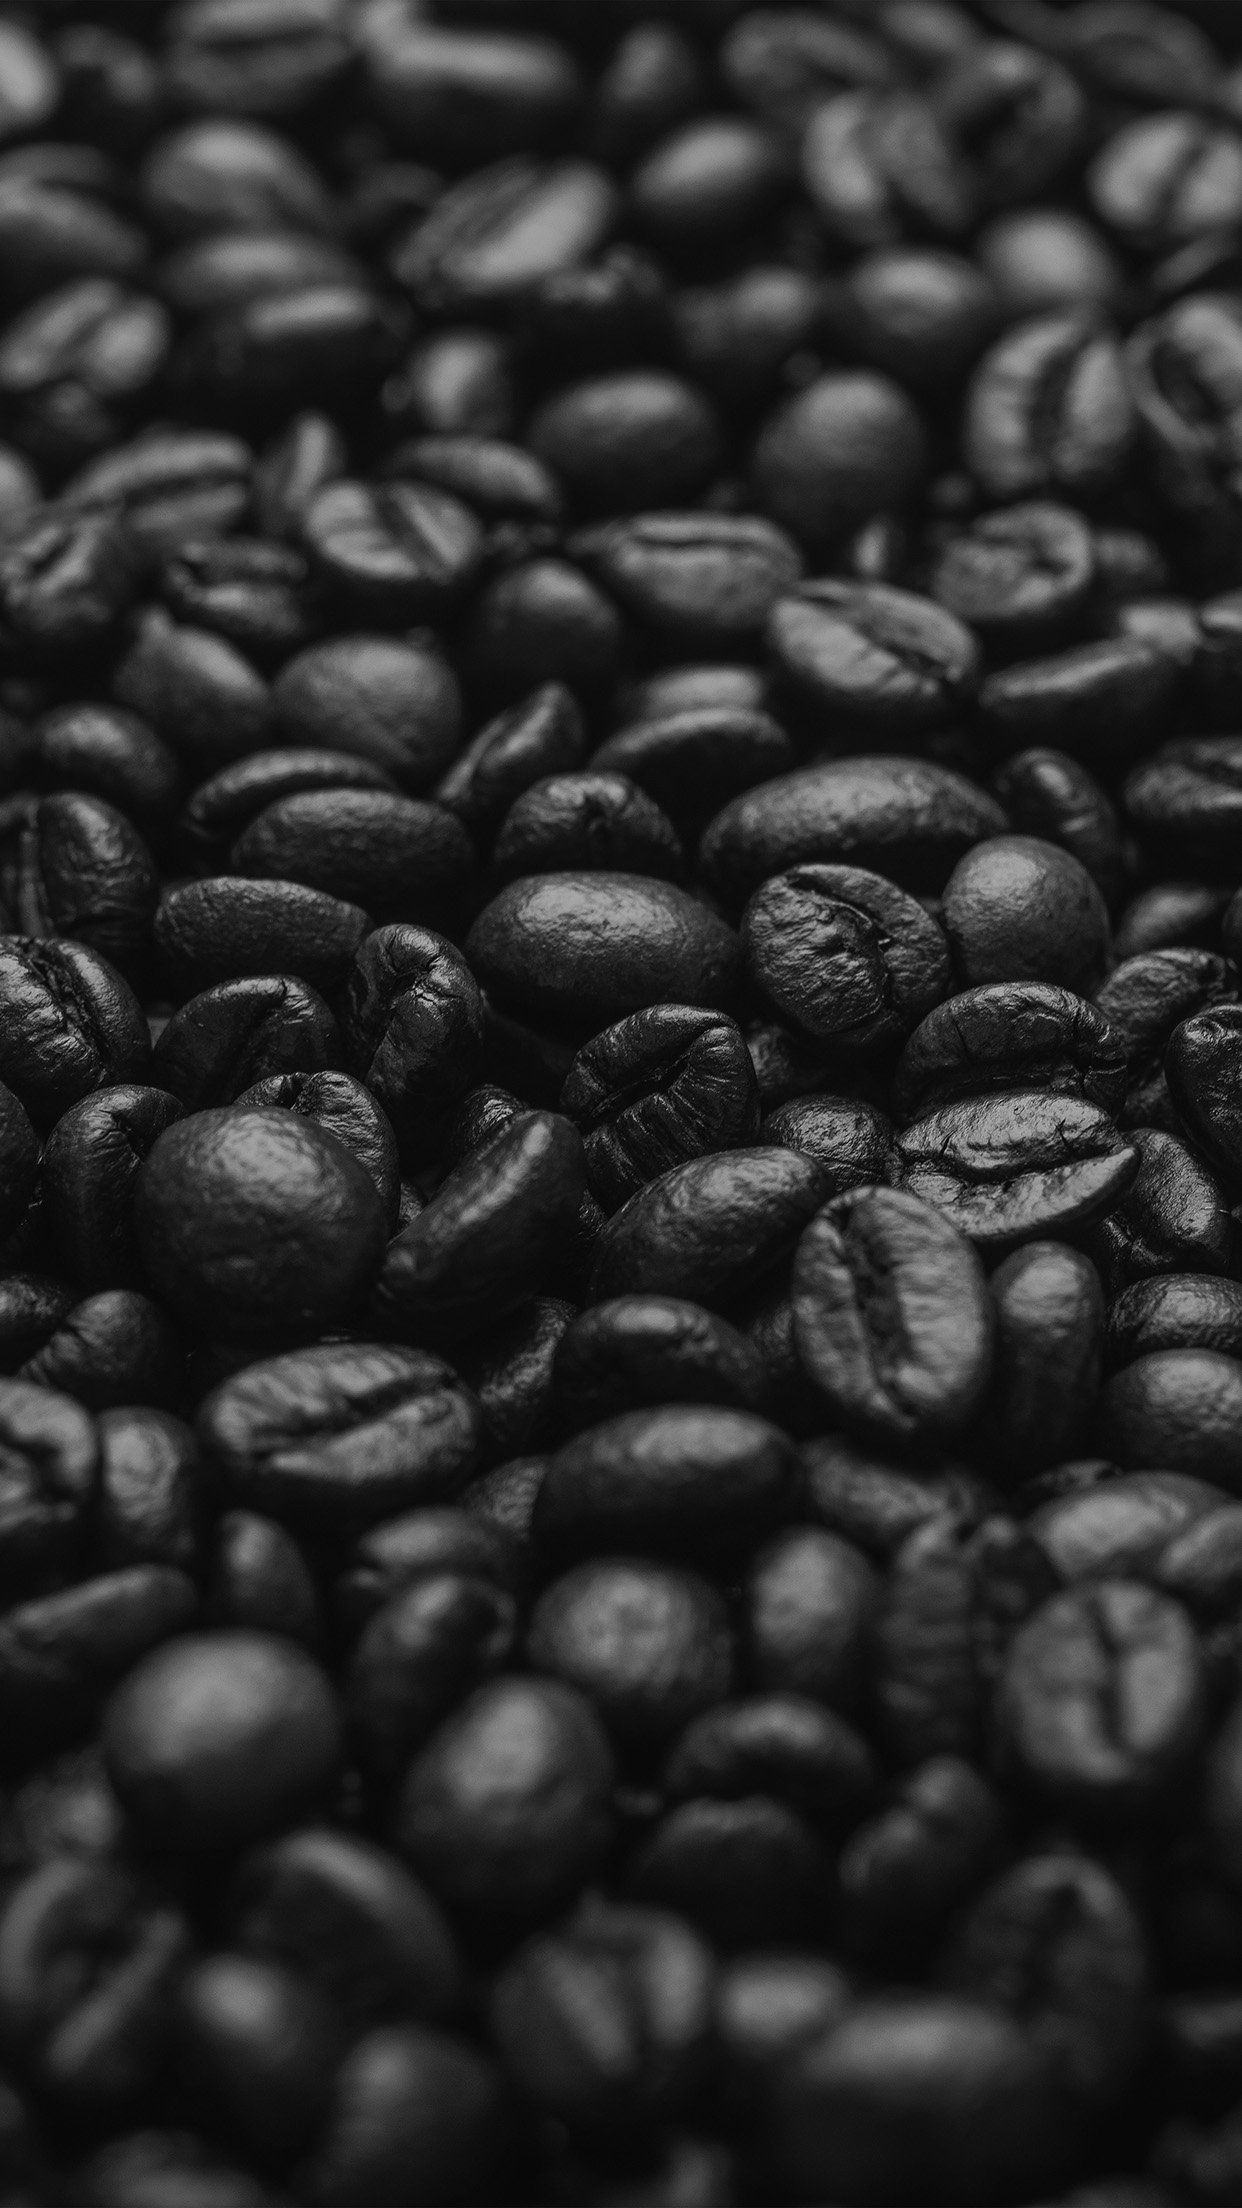 Hd wallpapers for iphone 6 - Dark Coffee Beans Iphone 6 Hd Wallpaper Http Freebestpicture Com